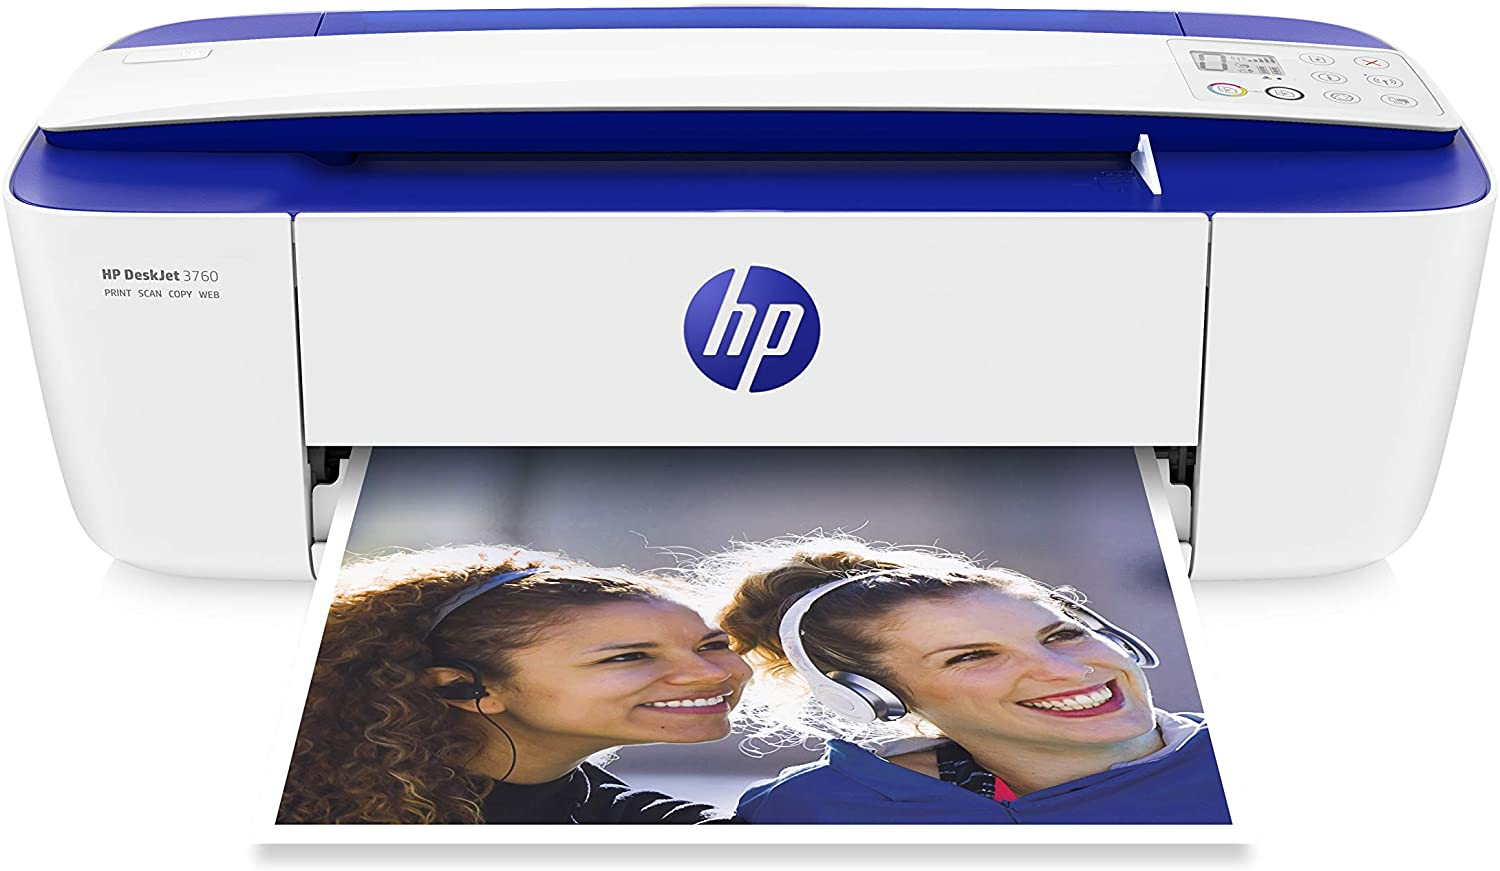 HP DeskJet 3760 All-in-One Printer, Instant Ink with 2 Months Trial, White uk reviews